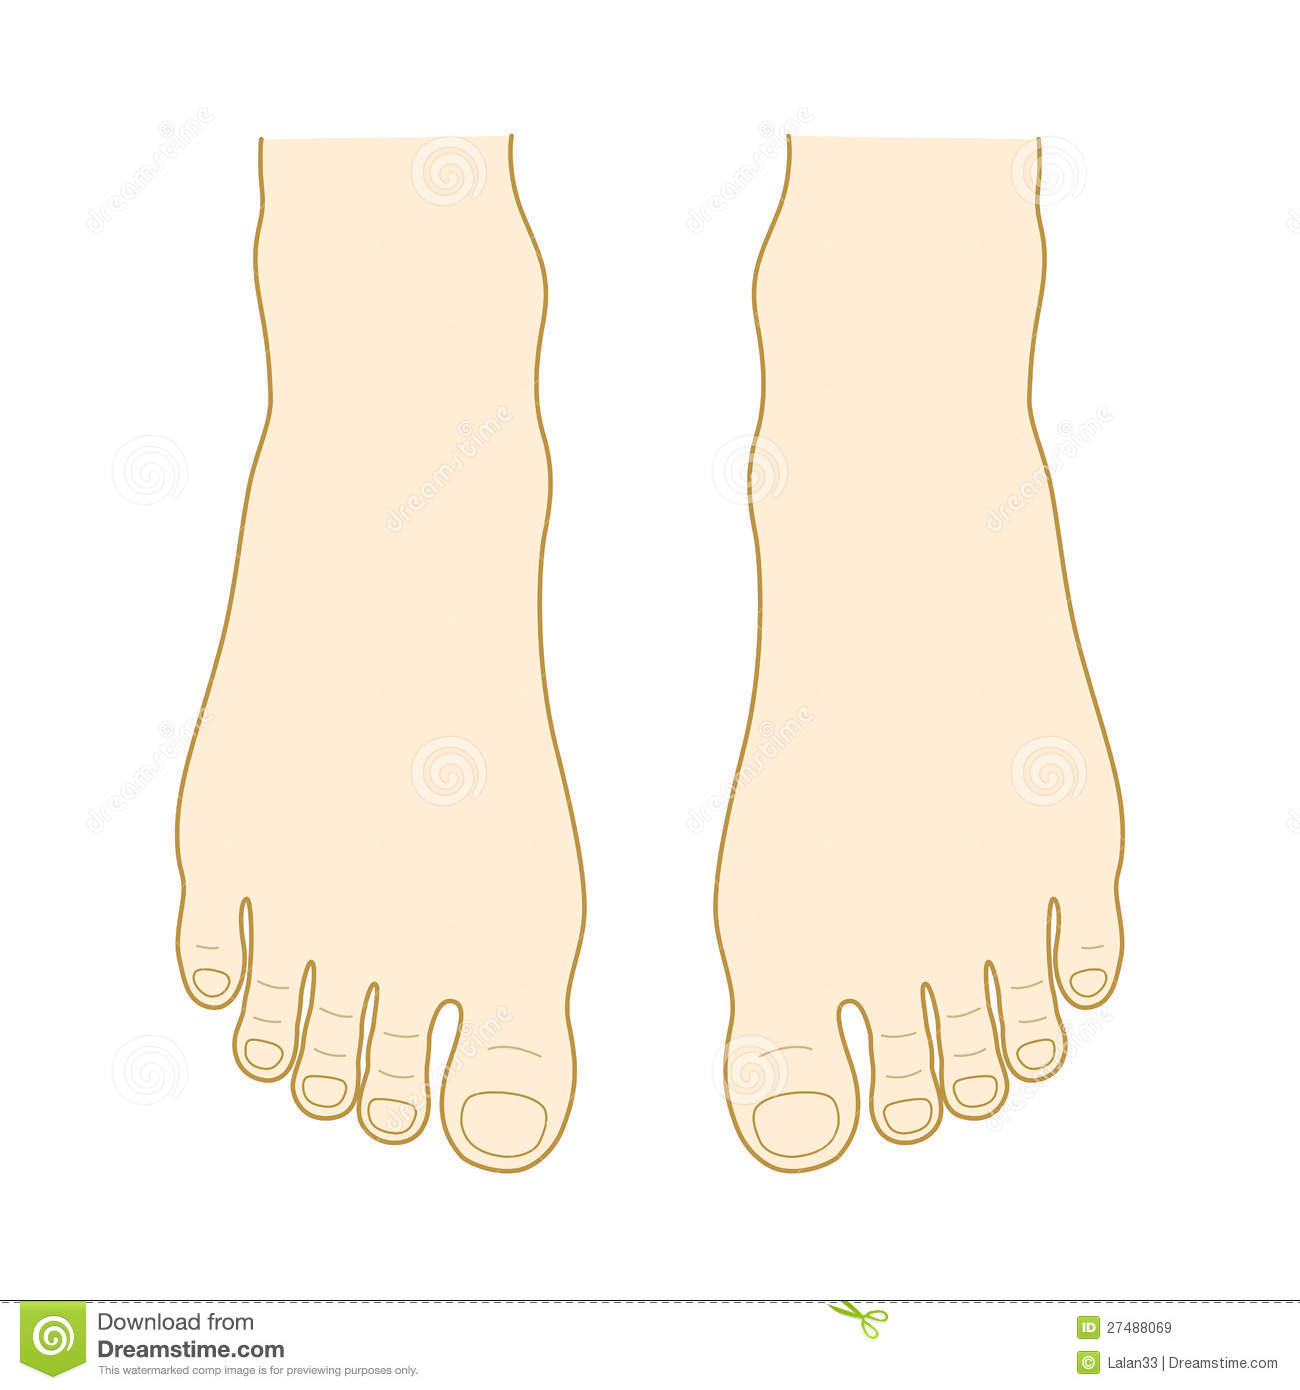 Instep And Toe Royalty Free Stock Images - Image: 27488069